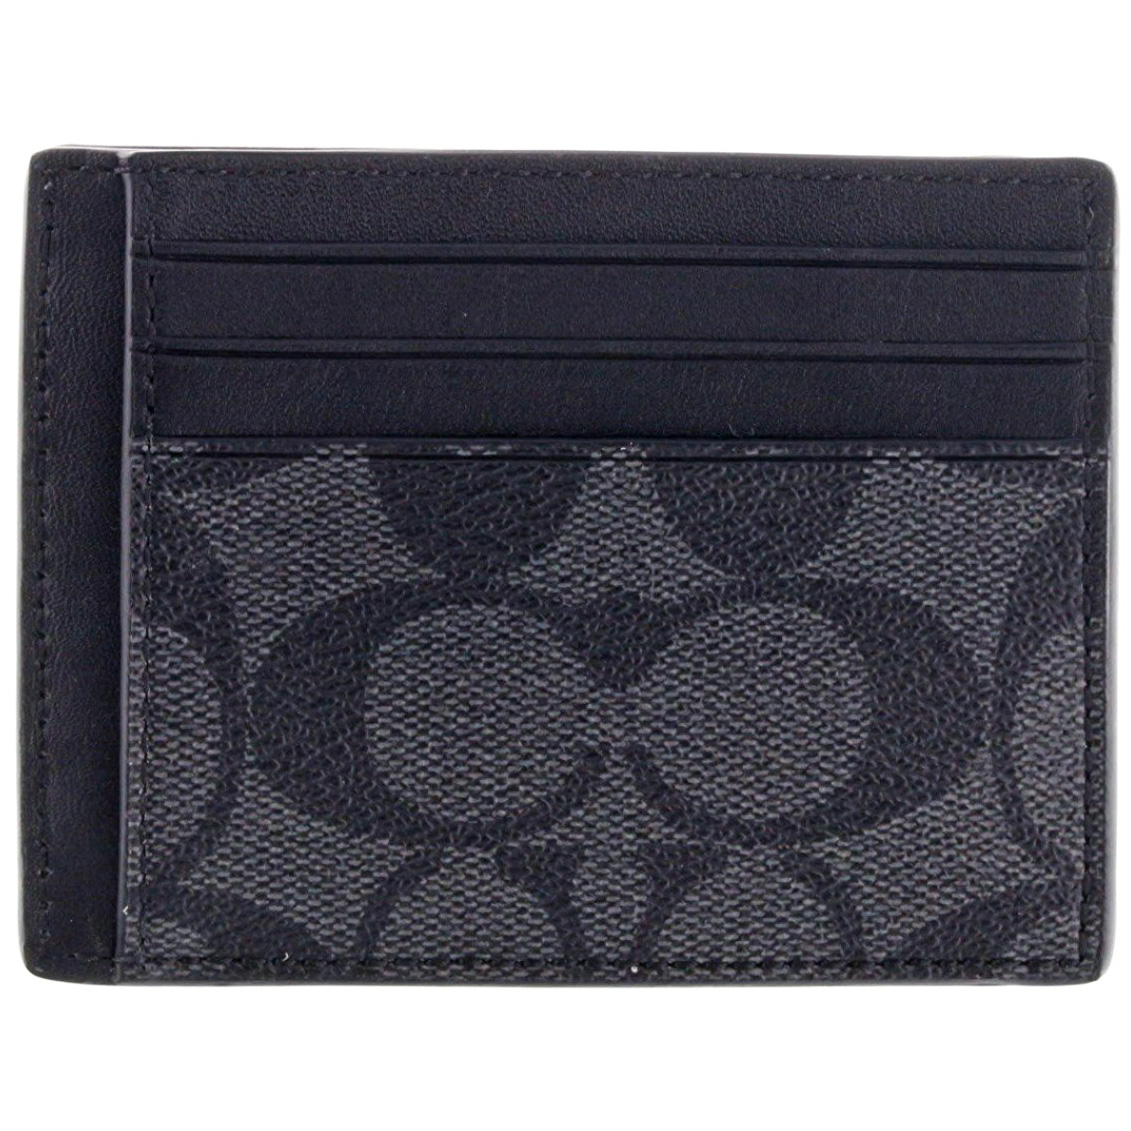 Coach Slim Id Card Case In Signature Charcoal / Black # F75027